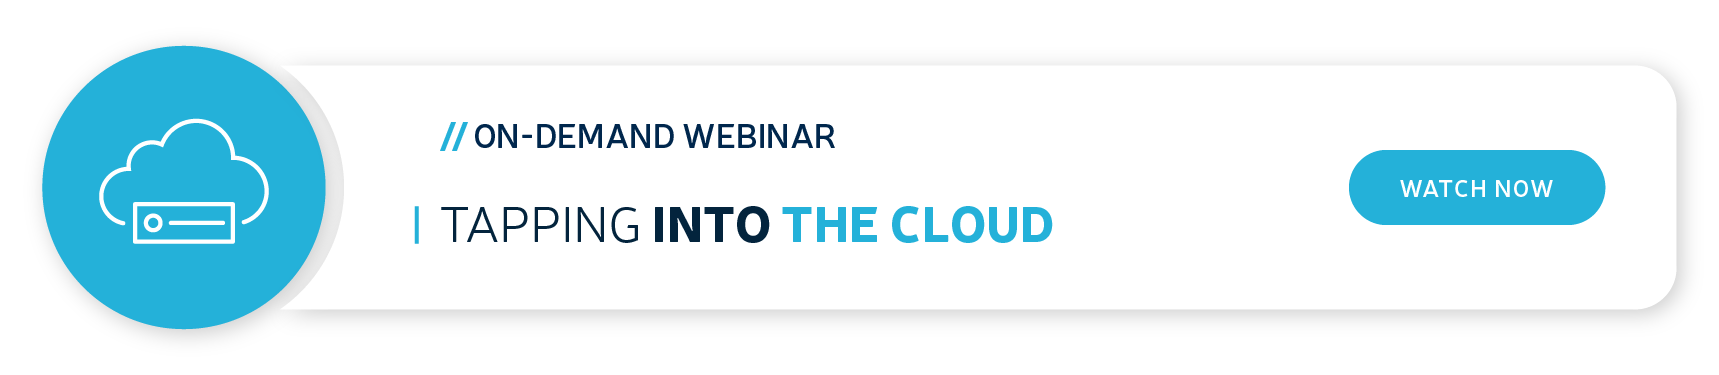 banner-blog-webinar-tapping-into-the-cloud-on_demand